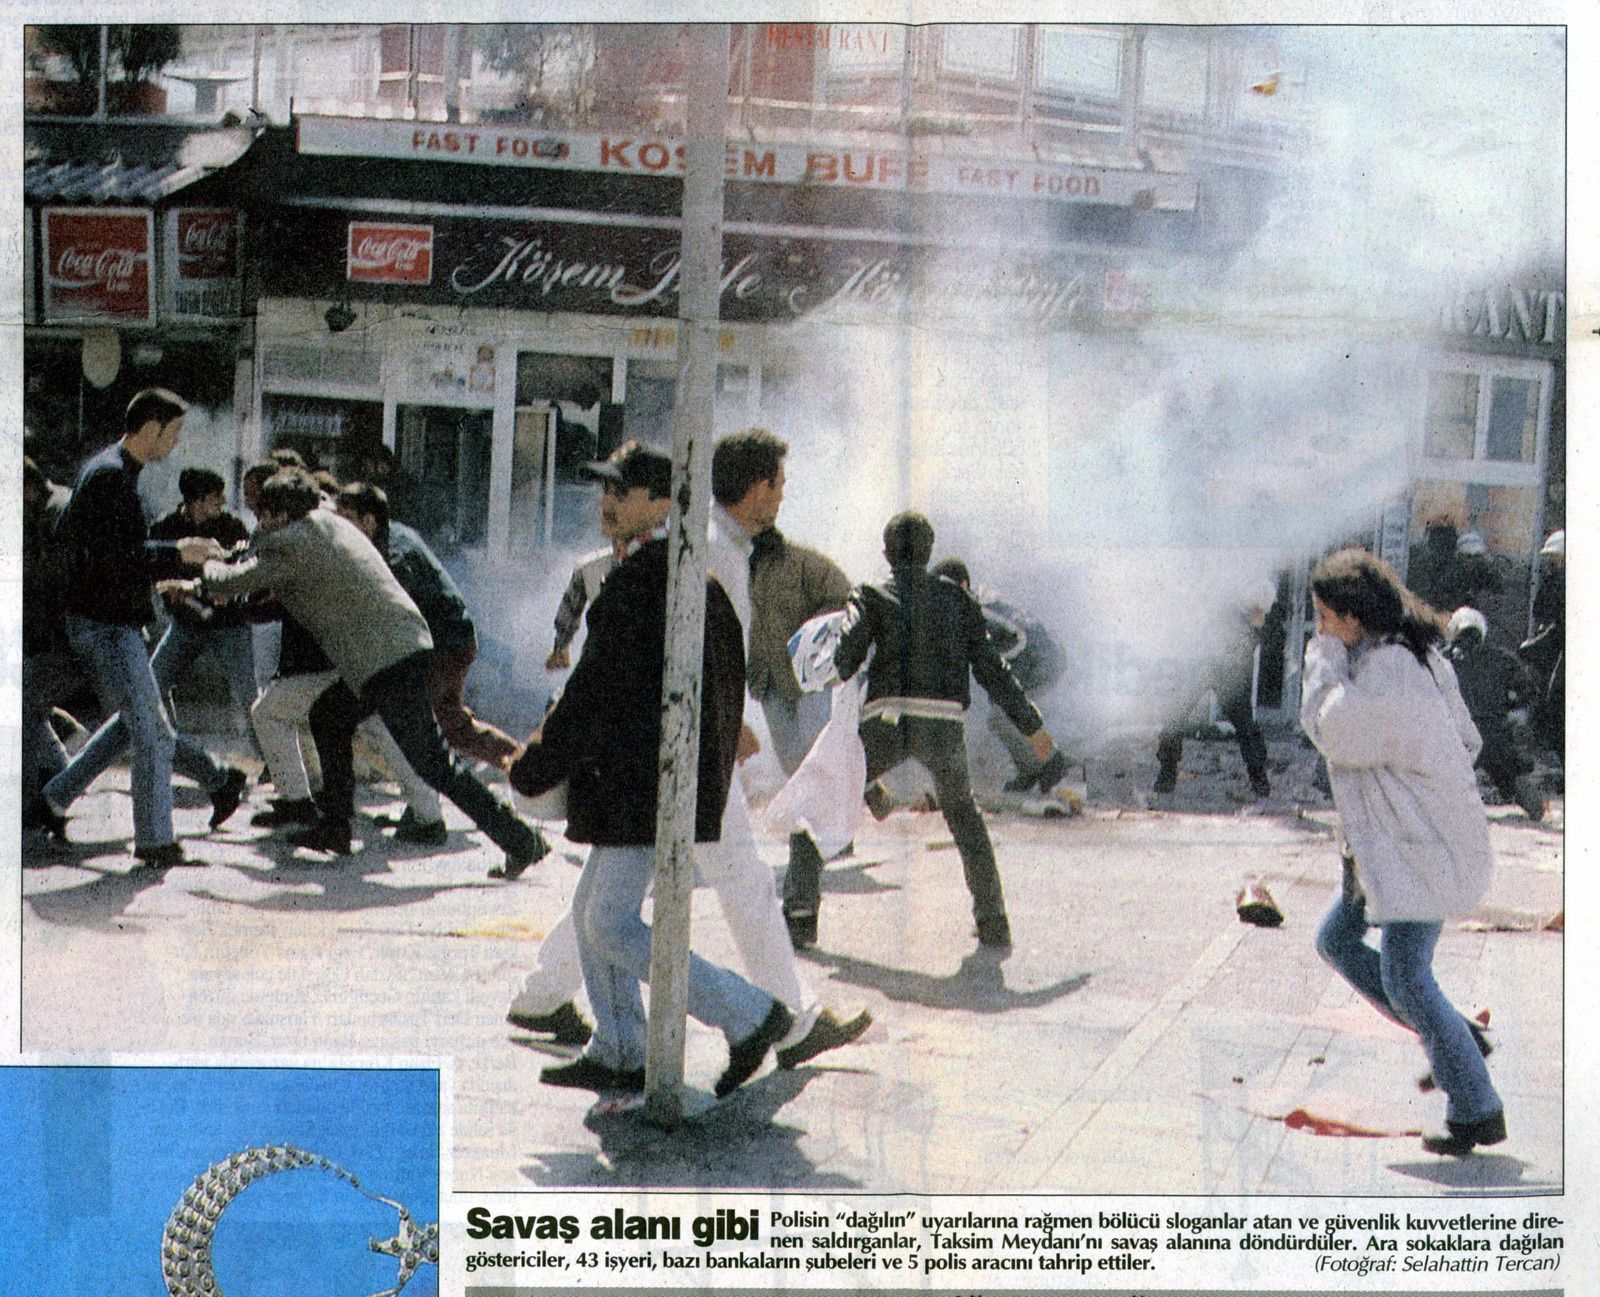 Photo Türkiye, 9 mars 1998